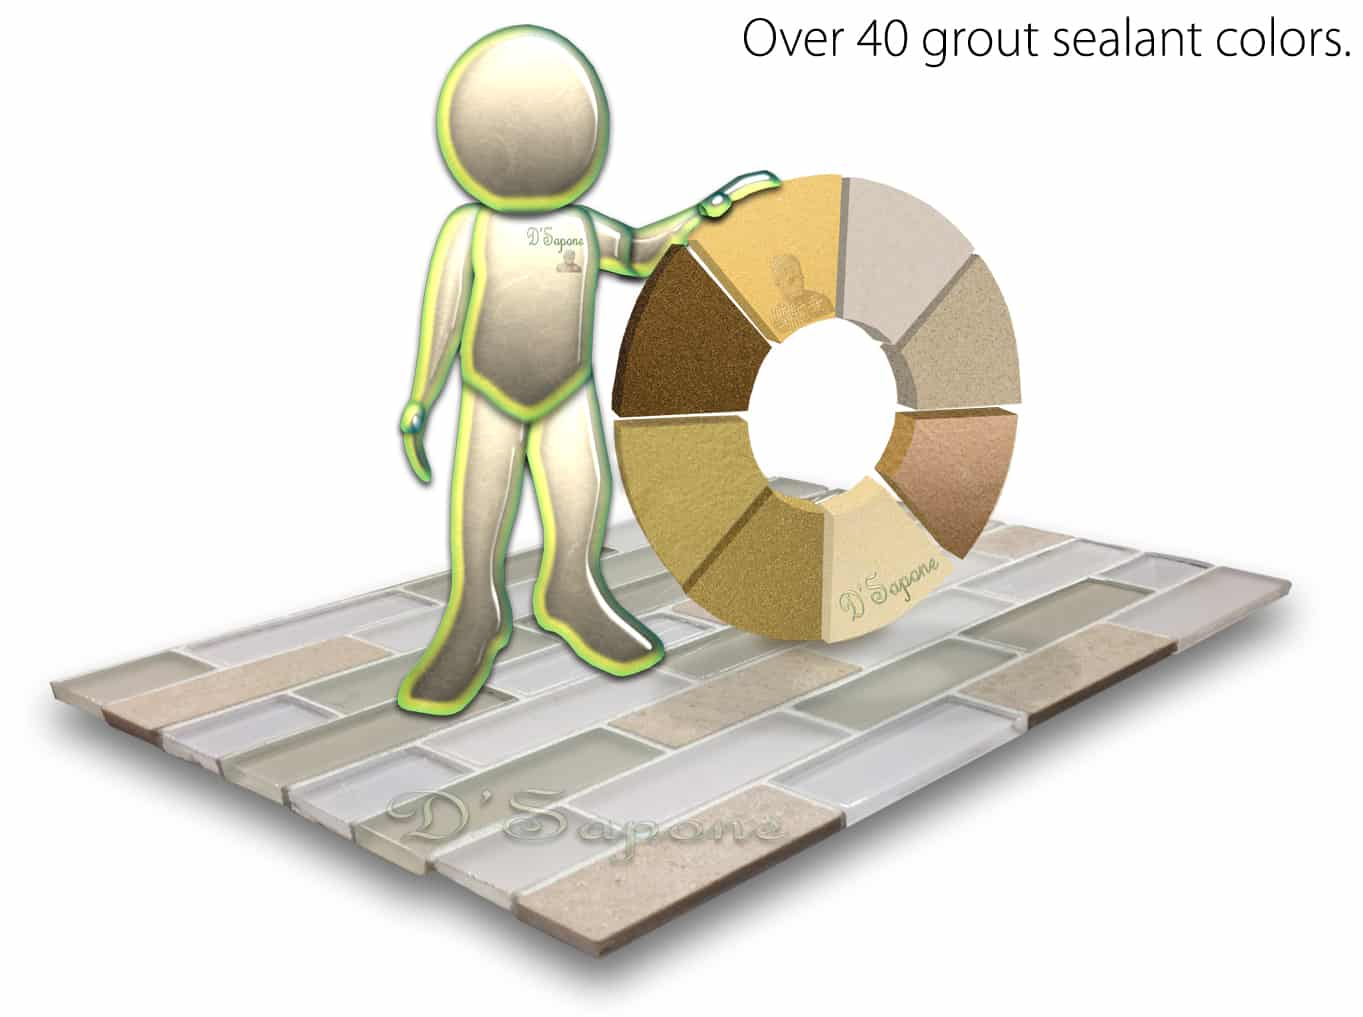 Are you Looking for the Correct Color Seal for your Grout